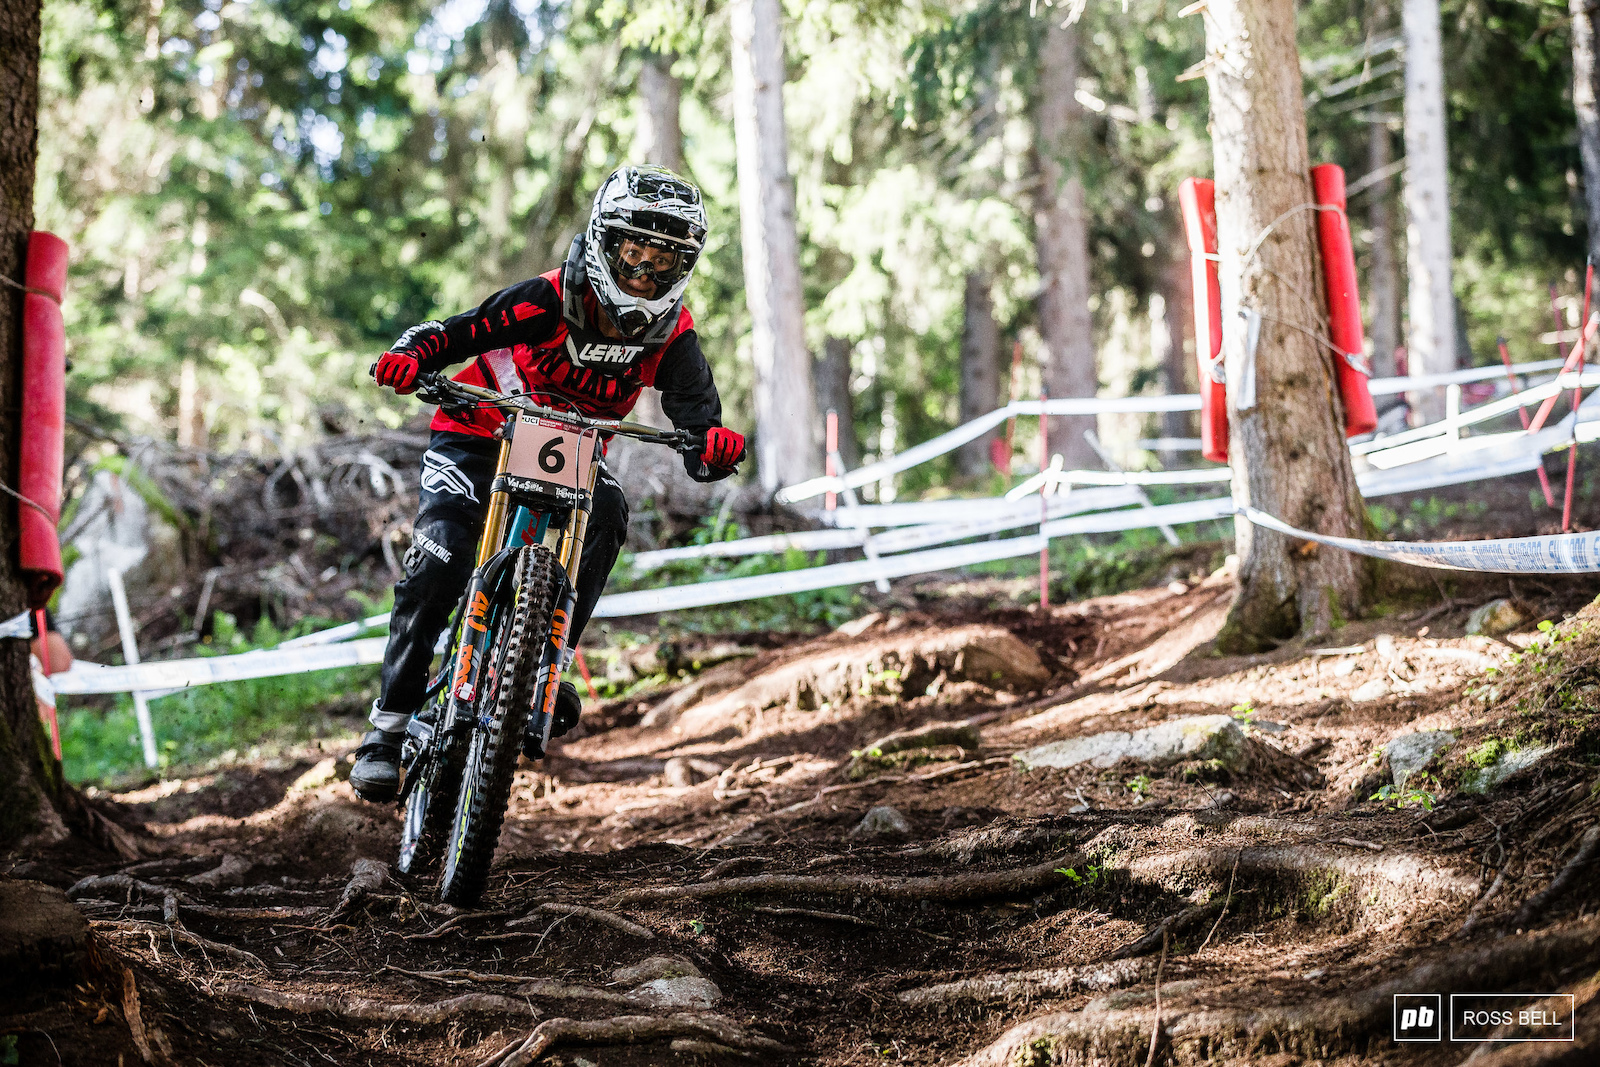 Emilie Siegenthaler looked comfortable in the slippery qualifying conditions later in the afternoon and ended up third just behind Tahnee Seagrave.